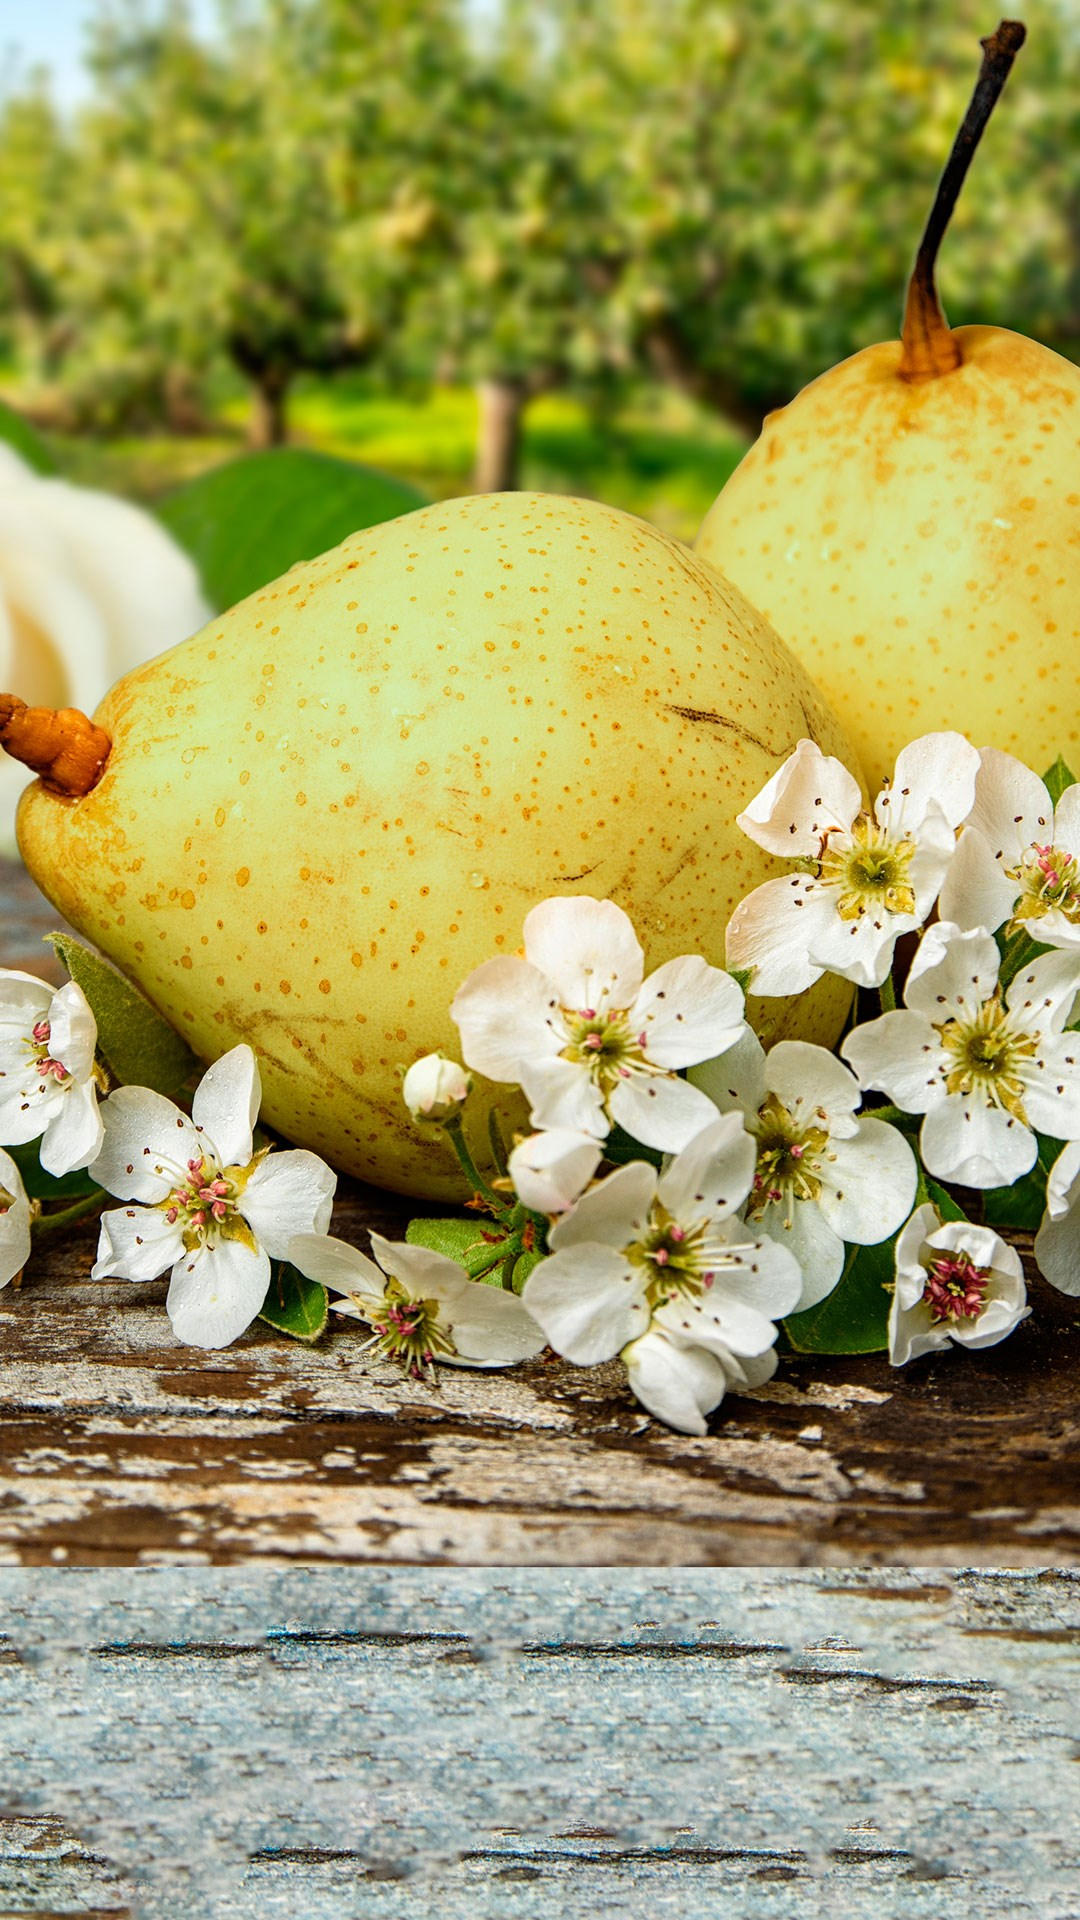 Ripe pears on orchard flowers - portrait